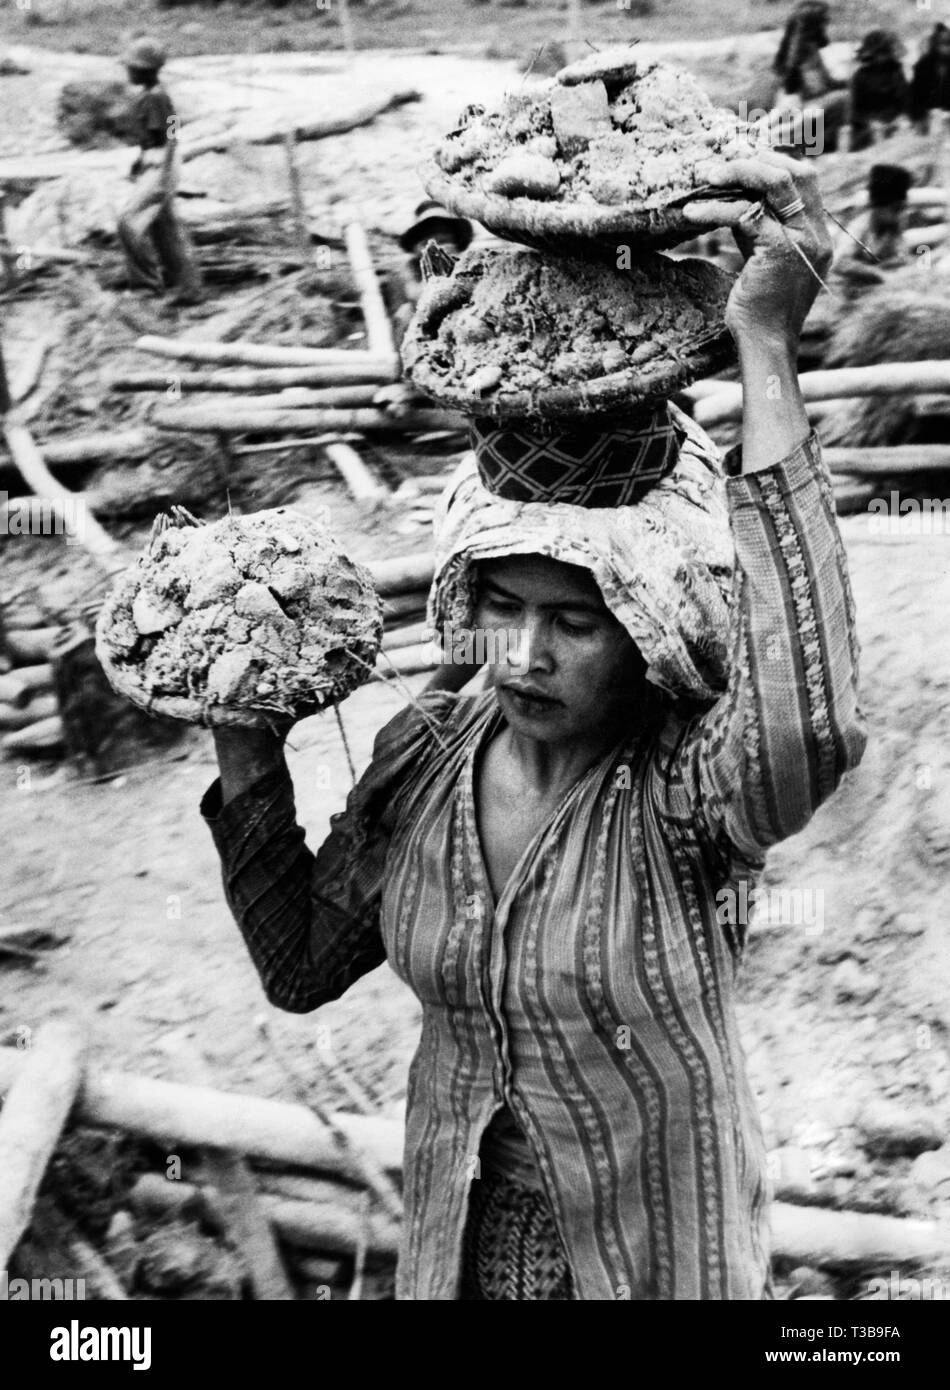 British Asia, Borneo, a gold digger carries sand for sifting, 1955 - Stock Image